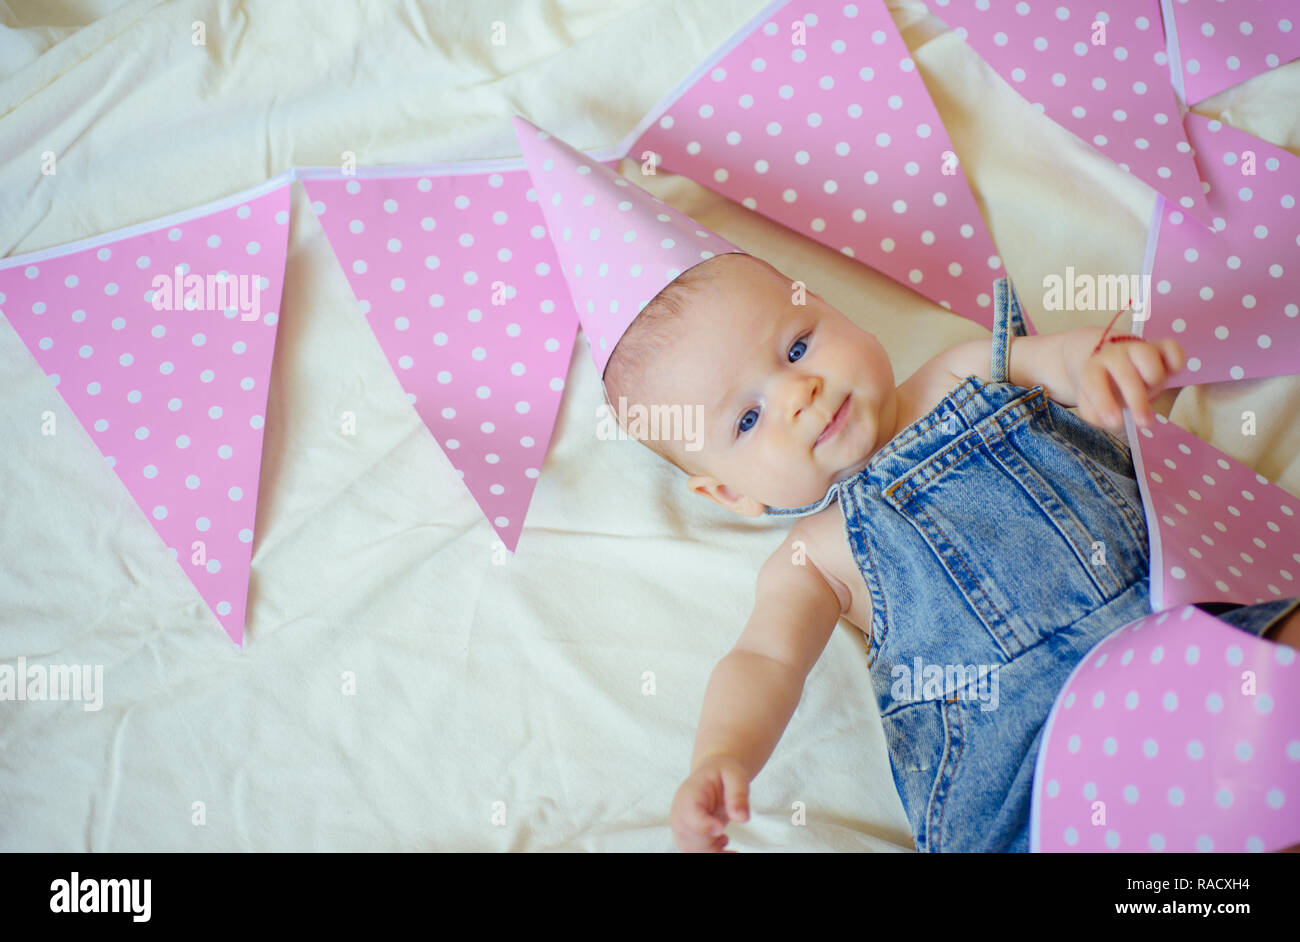 My best little friend. Sweet little baby. New life and birth. Childhood happiness. Portrait of happy little child. Small girl. Happy birthday. Family. Stock Photo